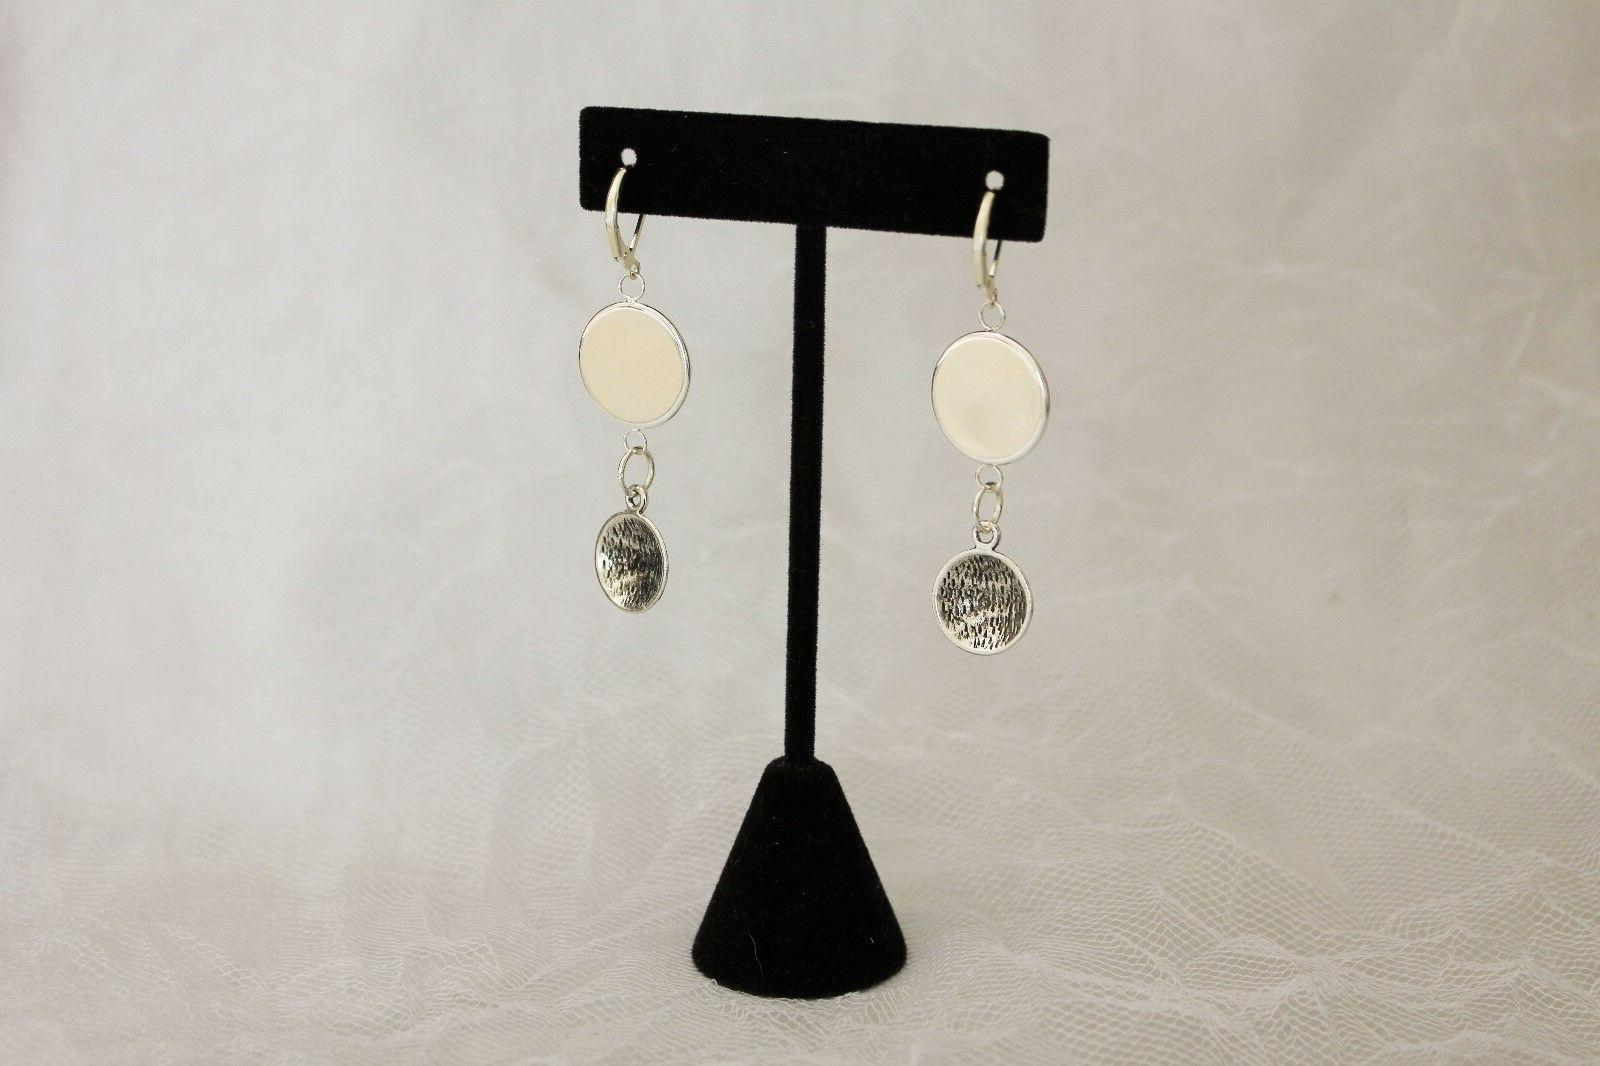 Pittsburgh Pirates Earrings Charm from Cards